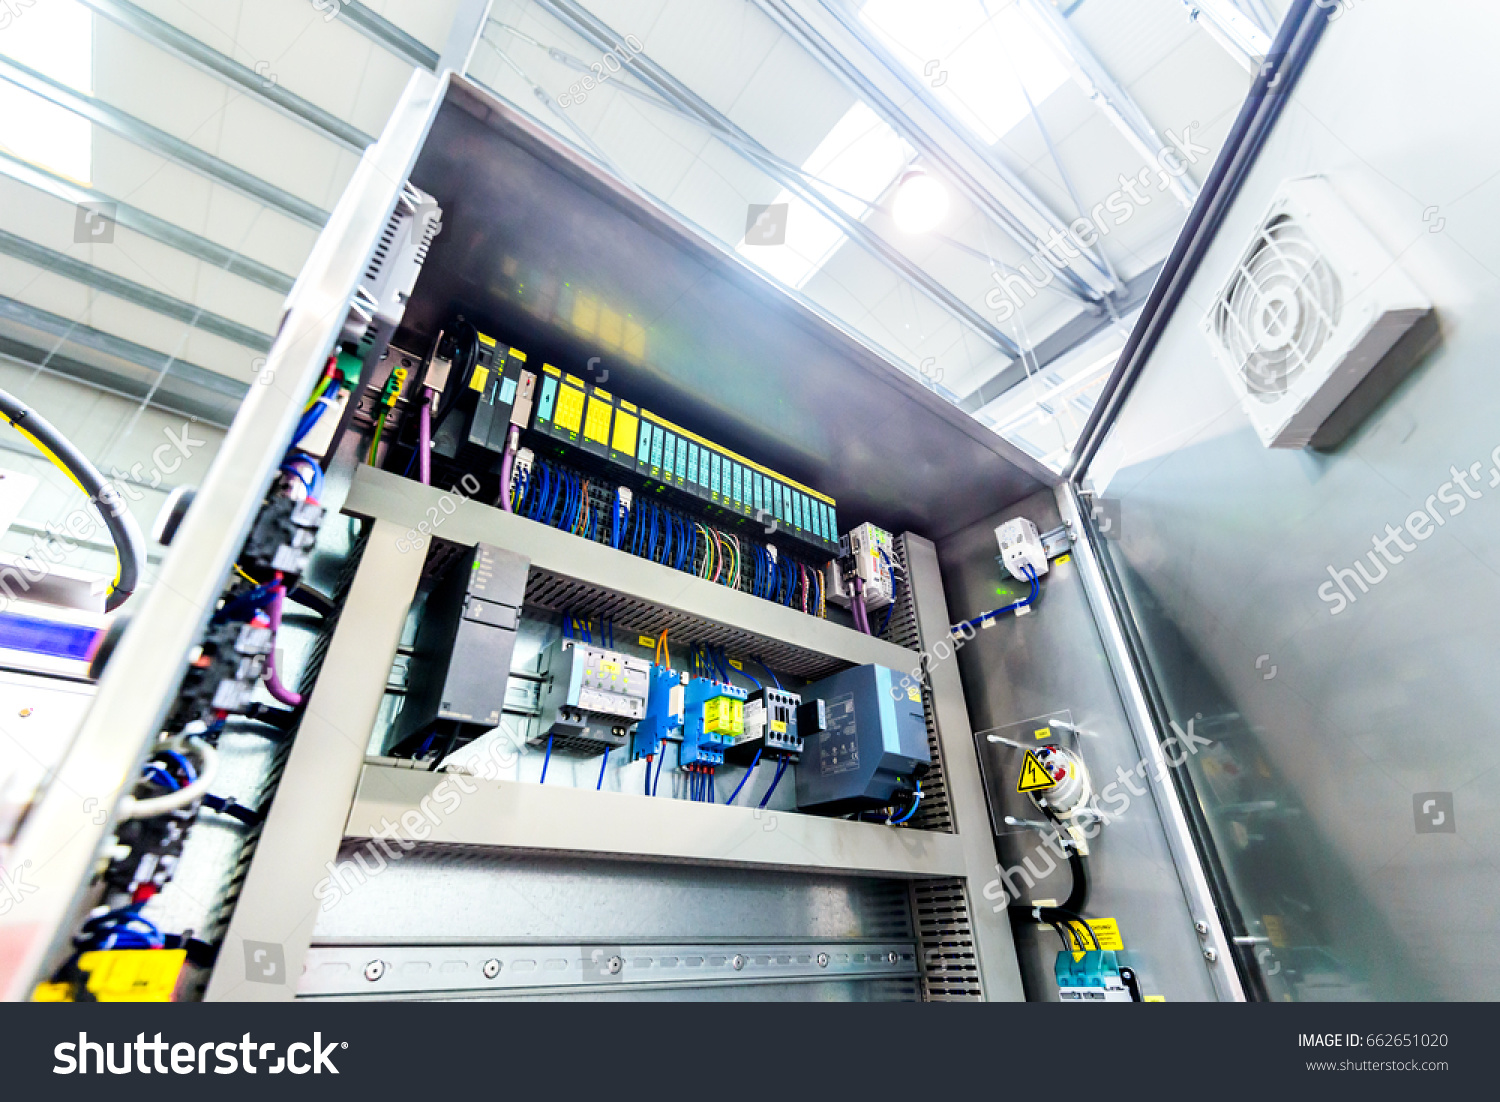 stock-photo-electric-control-panel-enclosure-for-power-and-distribution-electricity-uninterrupted-el